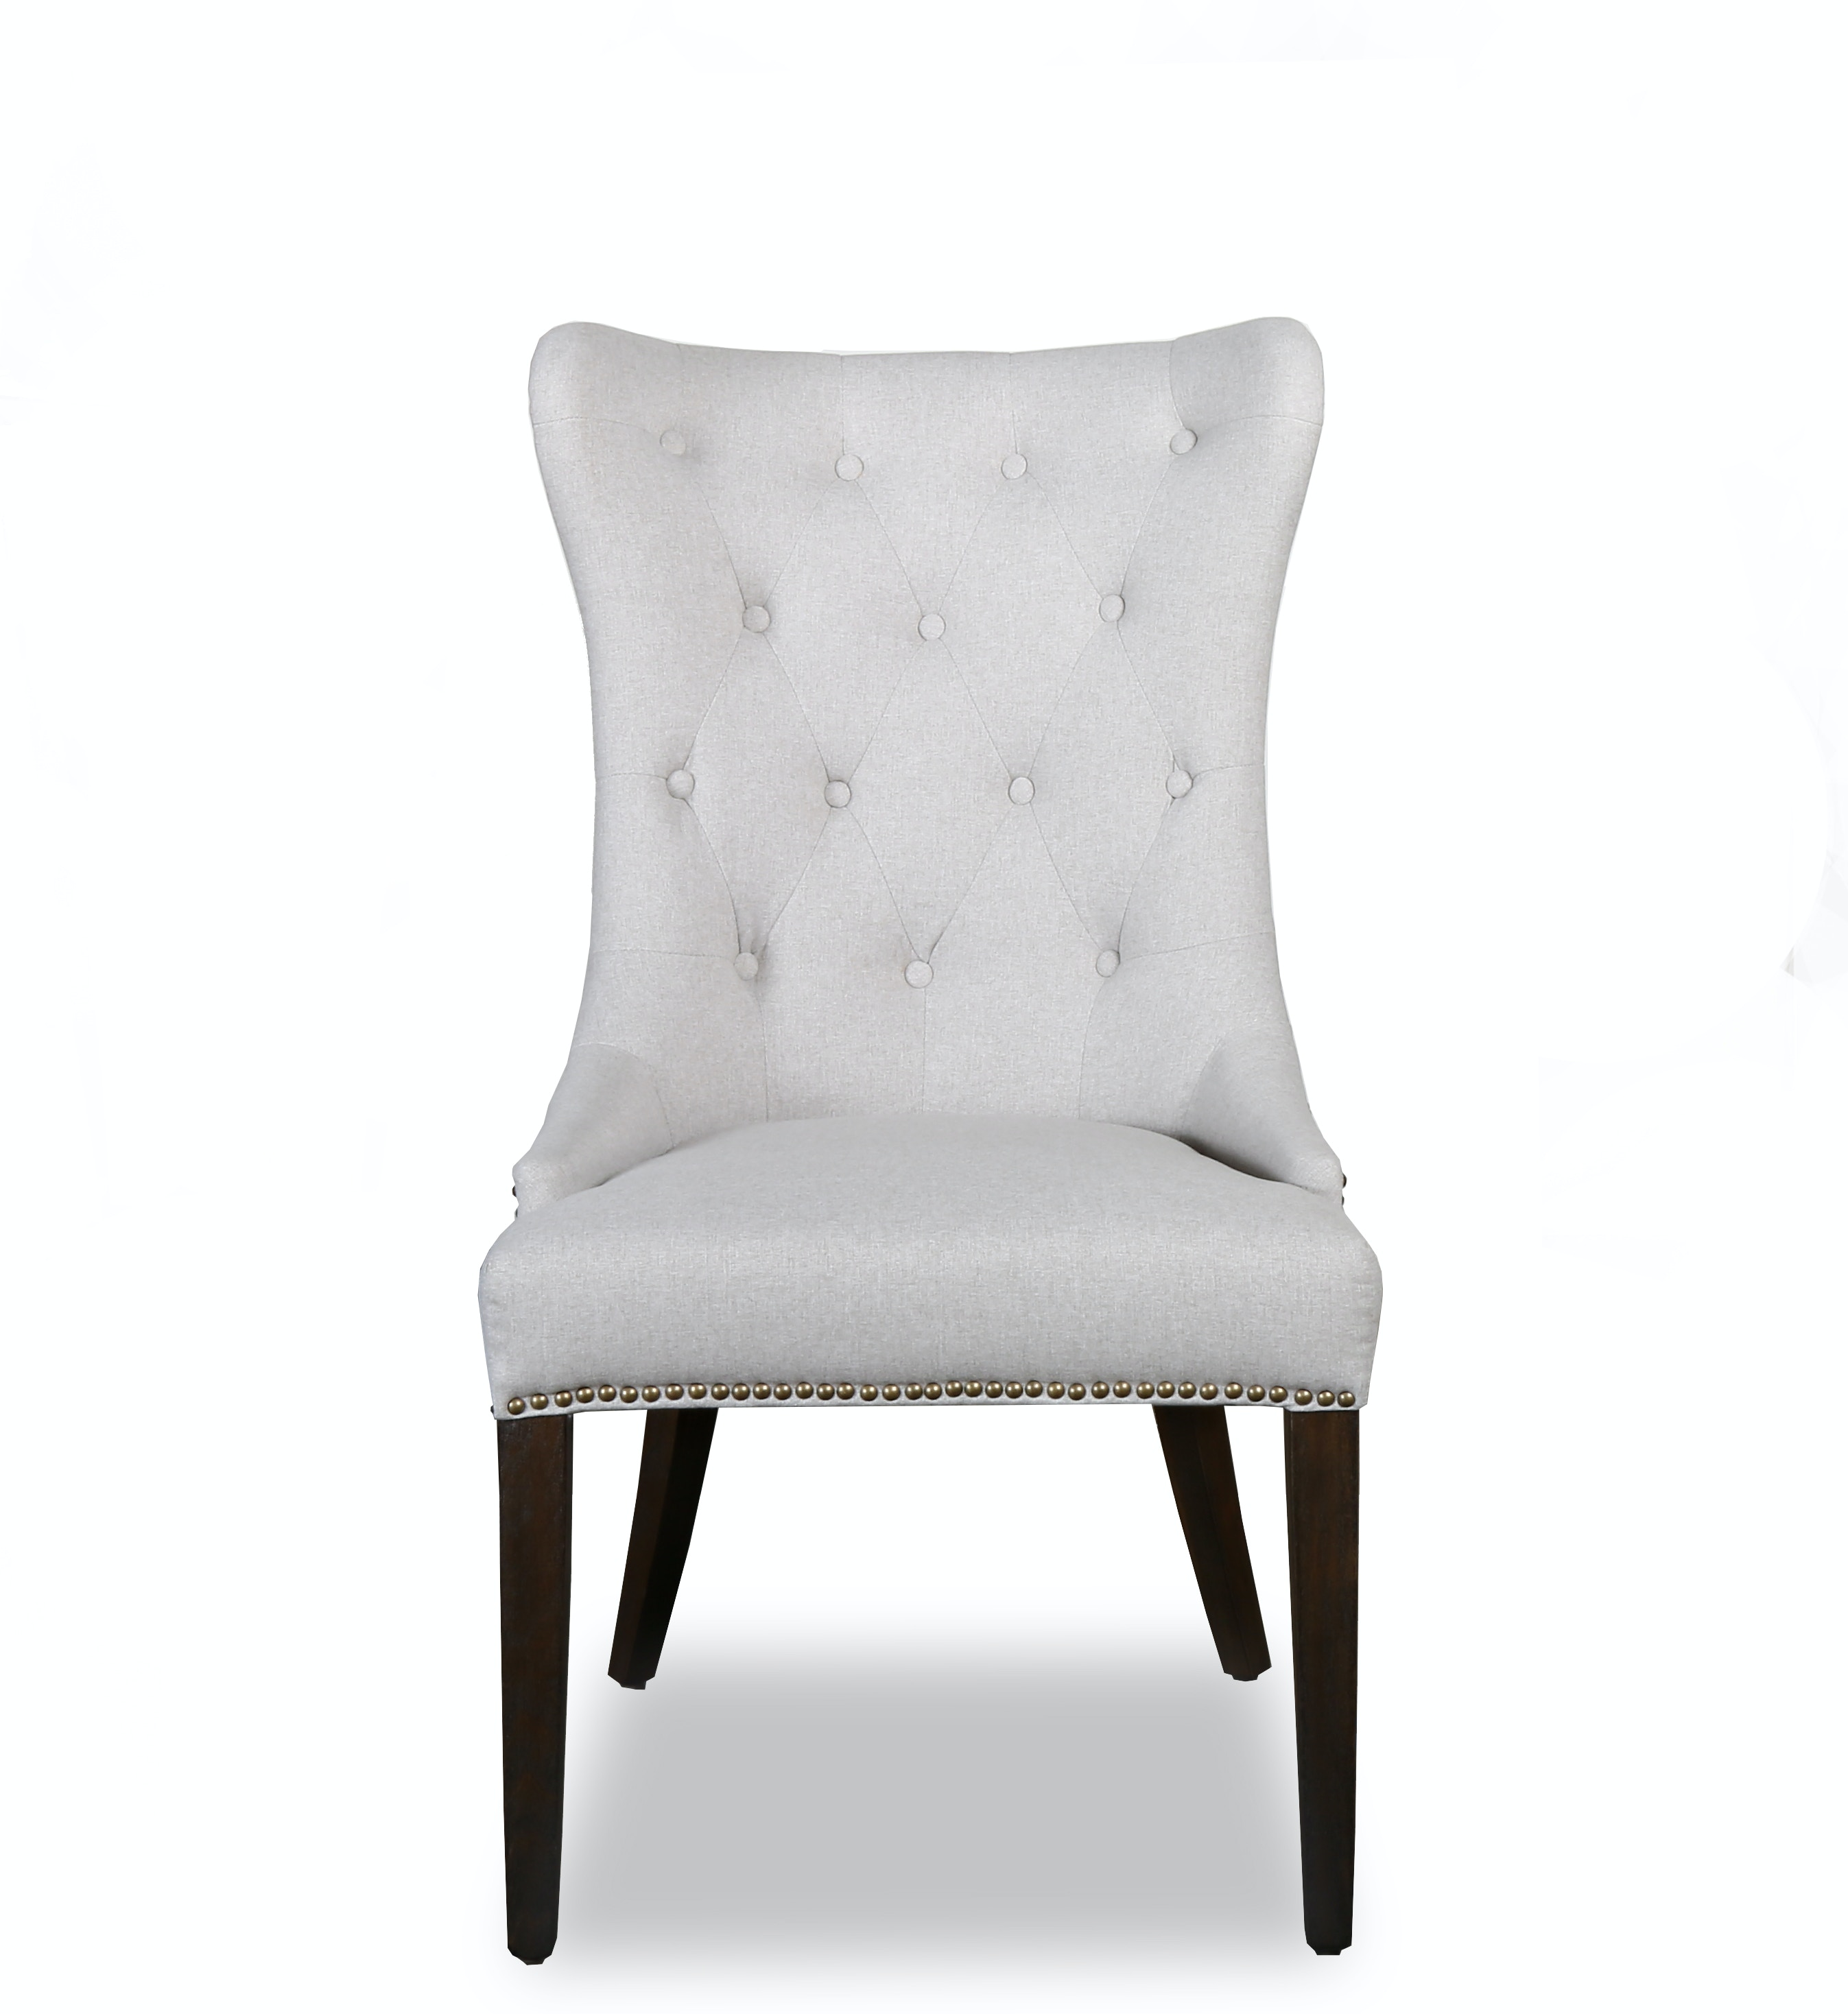 Gramercy Tufted Dining Chair